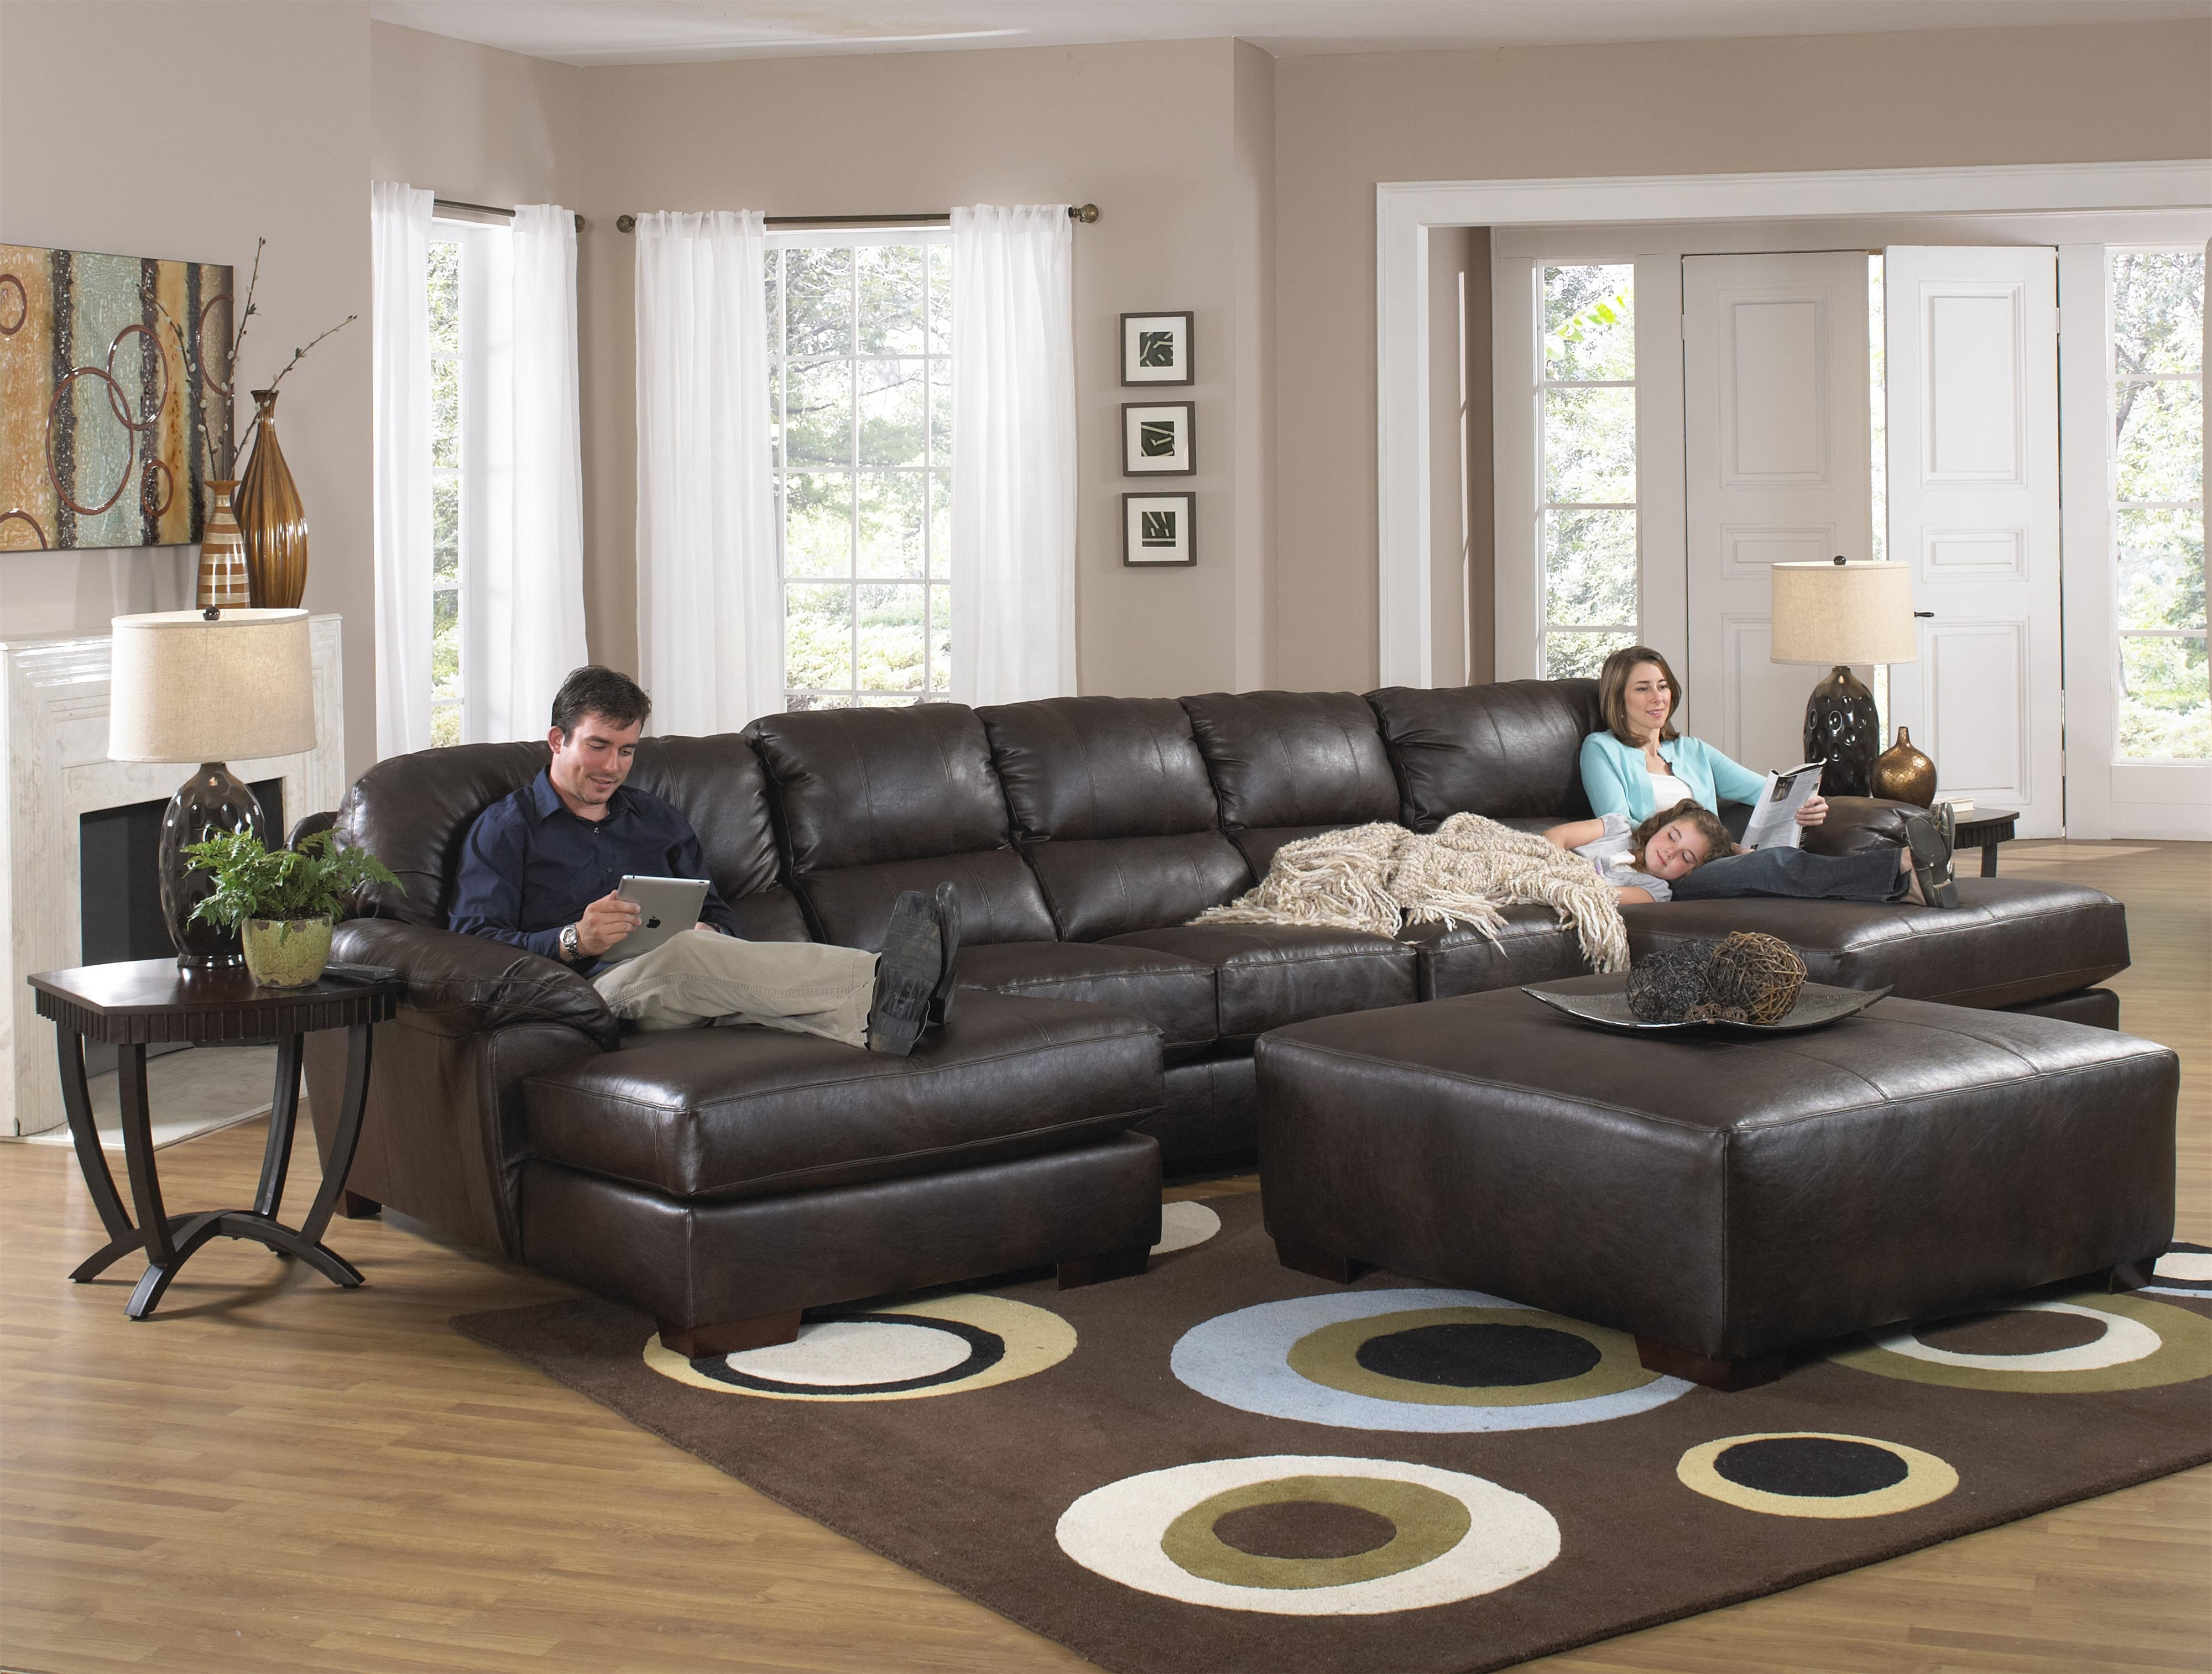 Two Chaise Sectional Sofa With Five Total Seatsjackson For Popular Dual Chaise Sectionals (View 6 of 15)